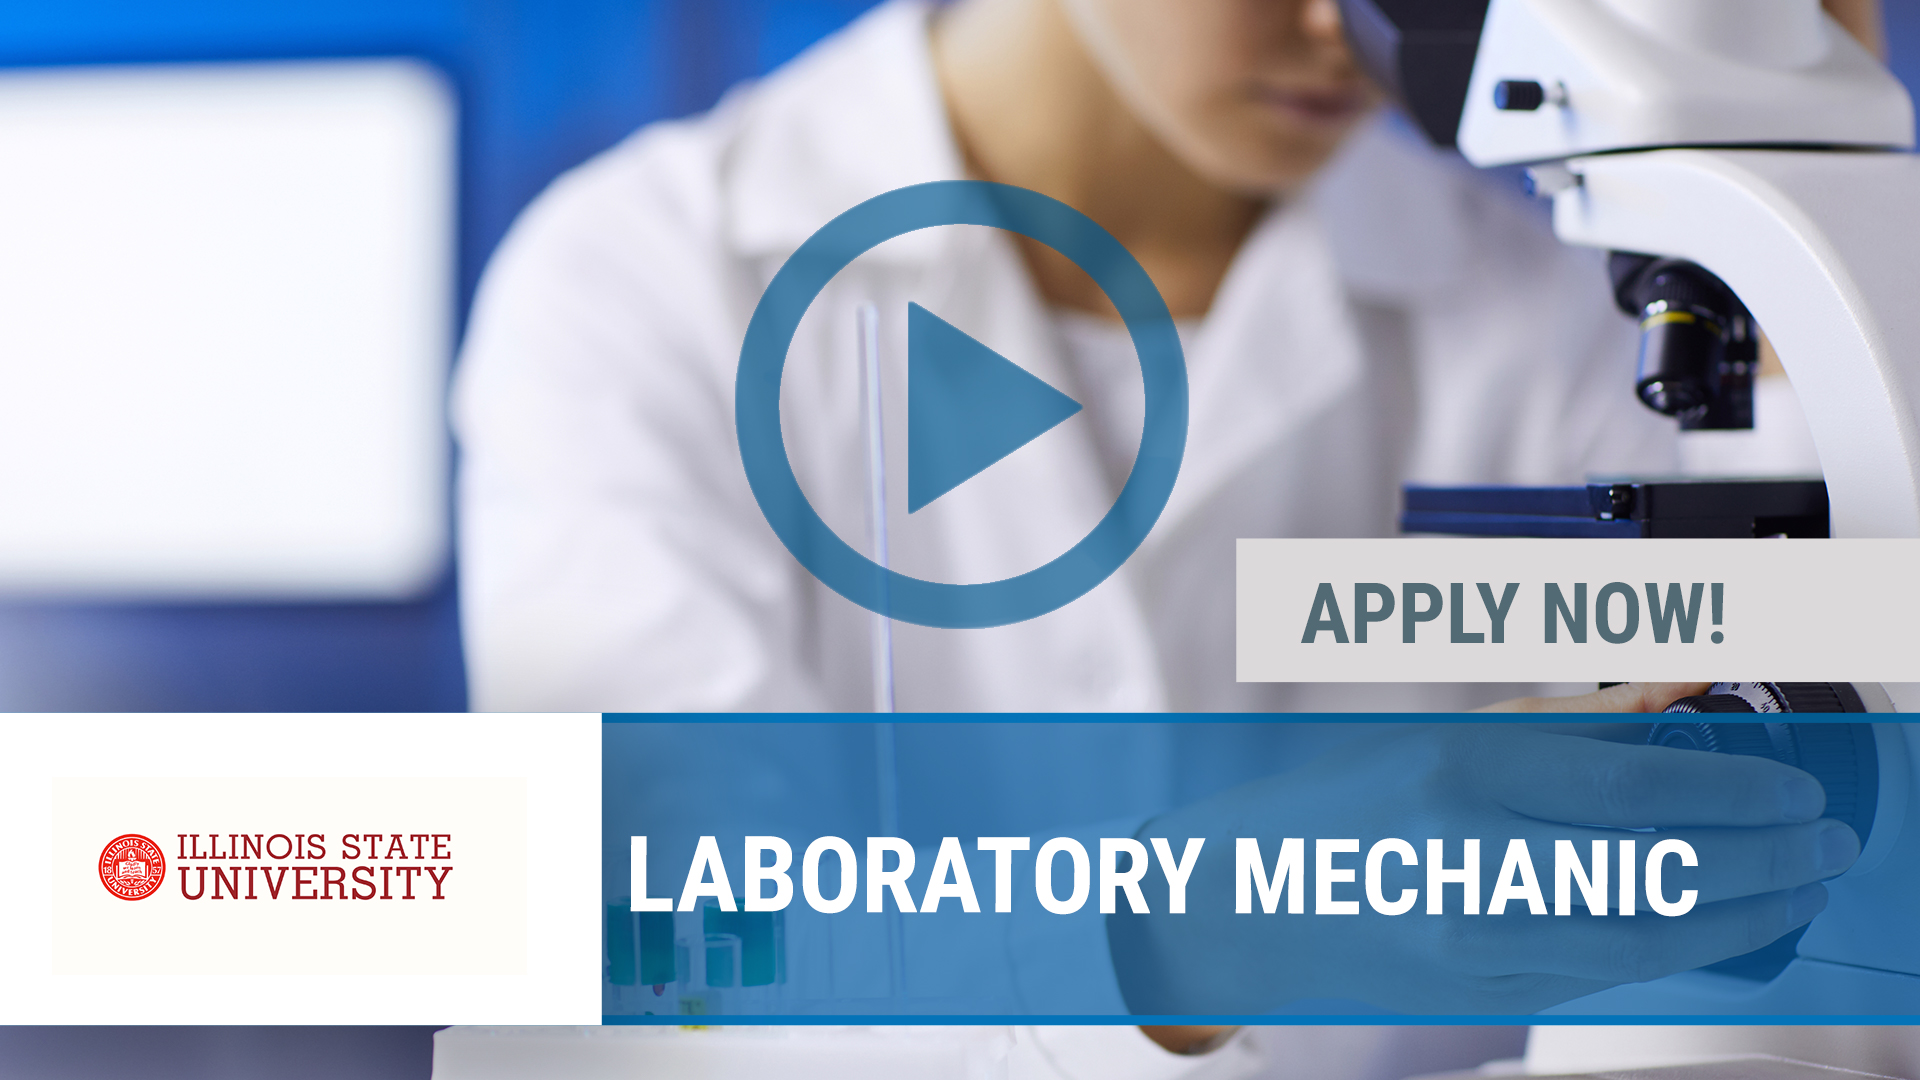 Watch our careers video for available job opening LABORATORY MECHANIC in NORMAL, IL